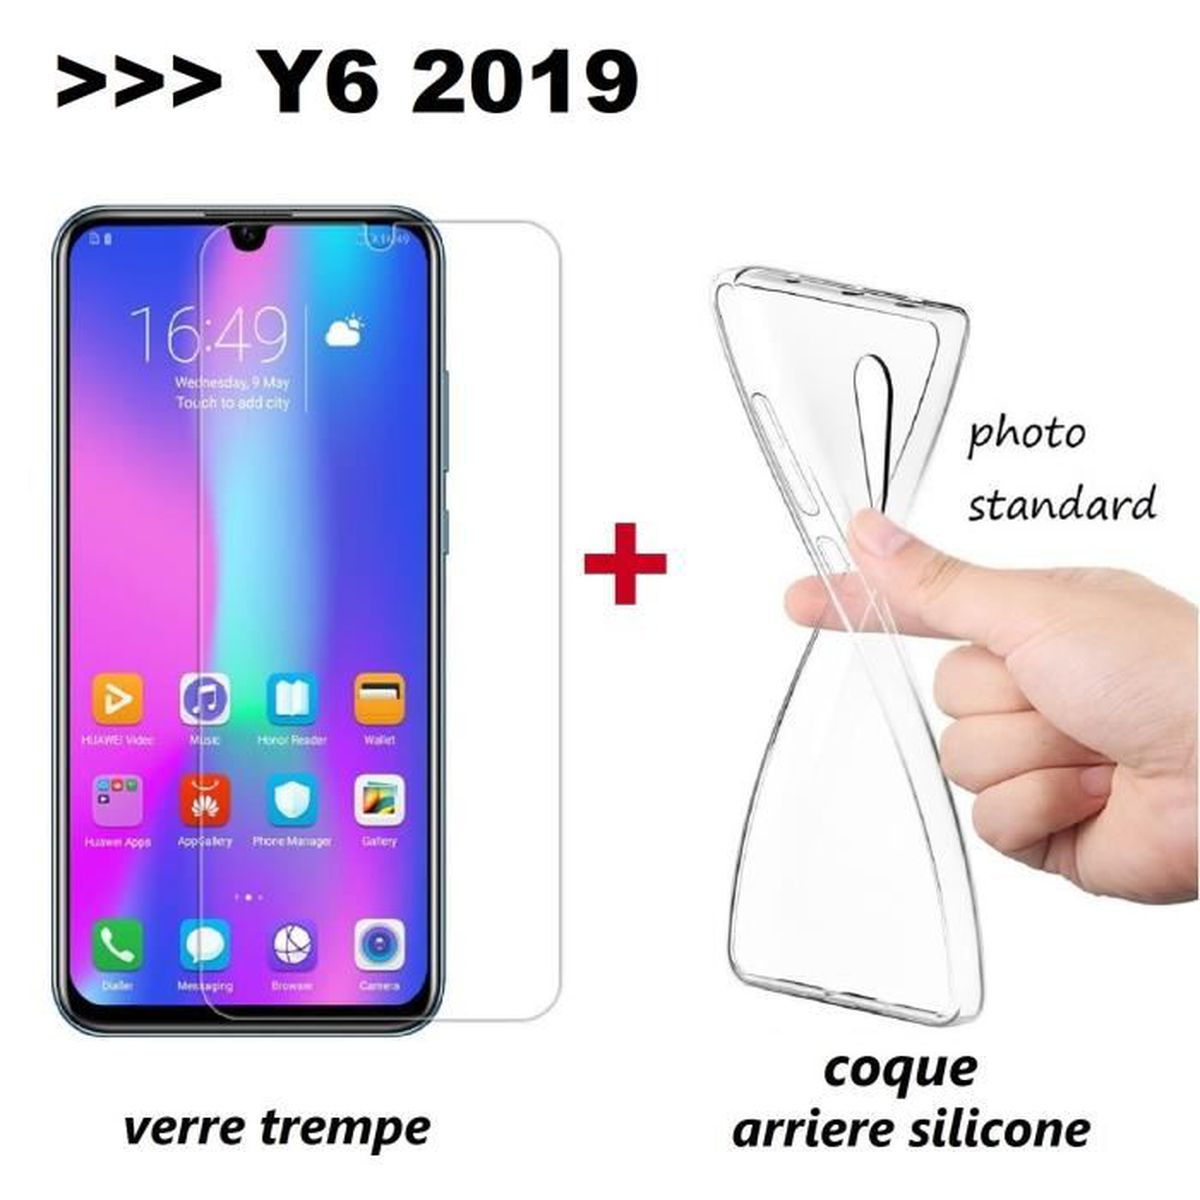 coque arriere huawei y6 2019